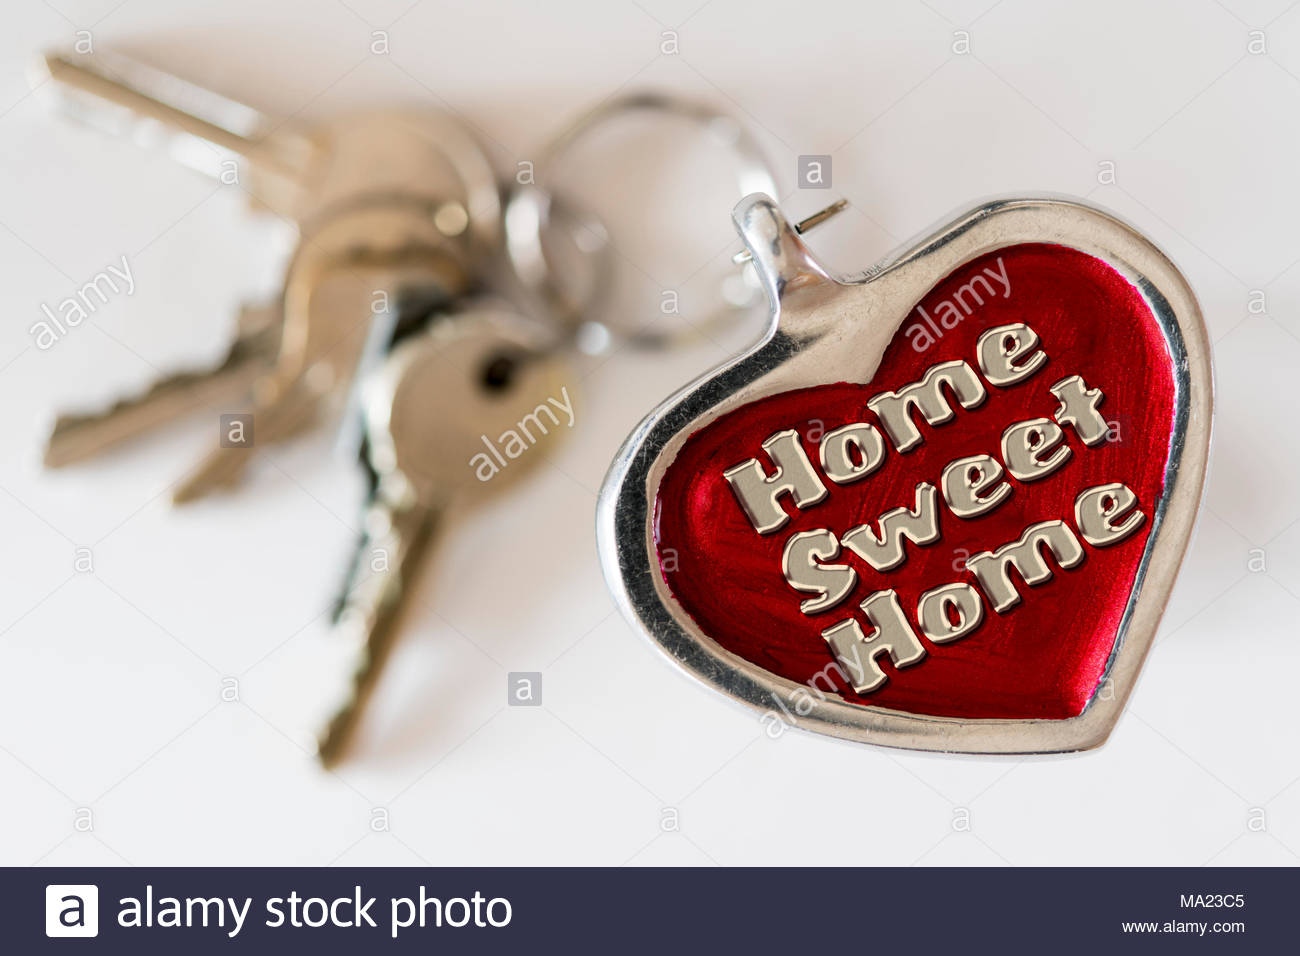 Home Sweet Home written on a key ring fob, UK - Stock Image